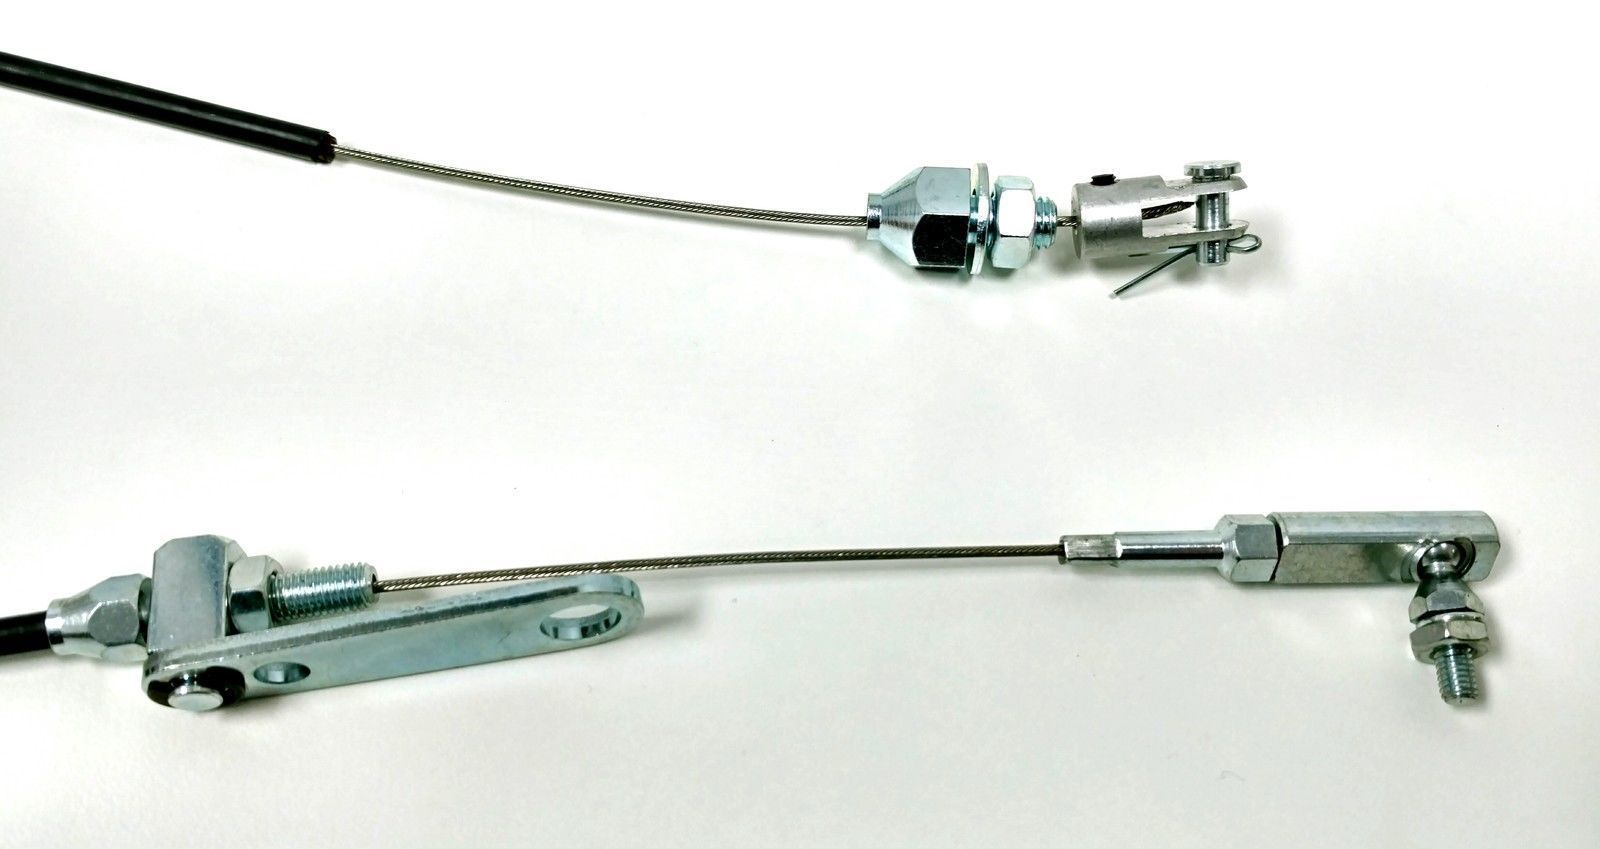 Hot Rod Cable : Hot rod chrome spoon throttle pedal kit w quot black cable